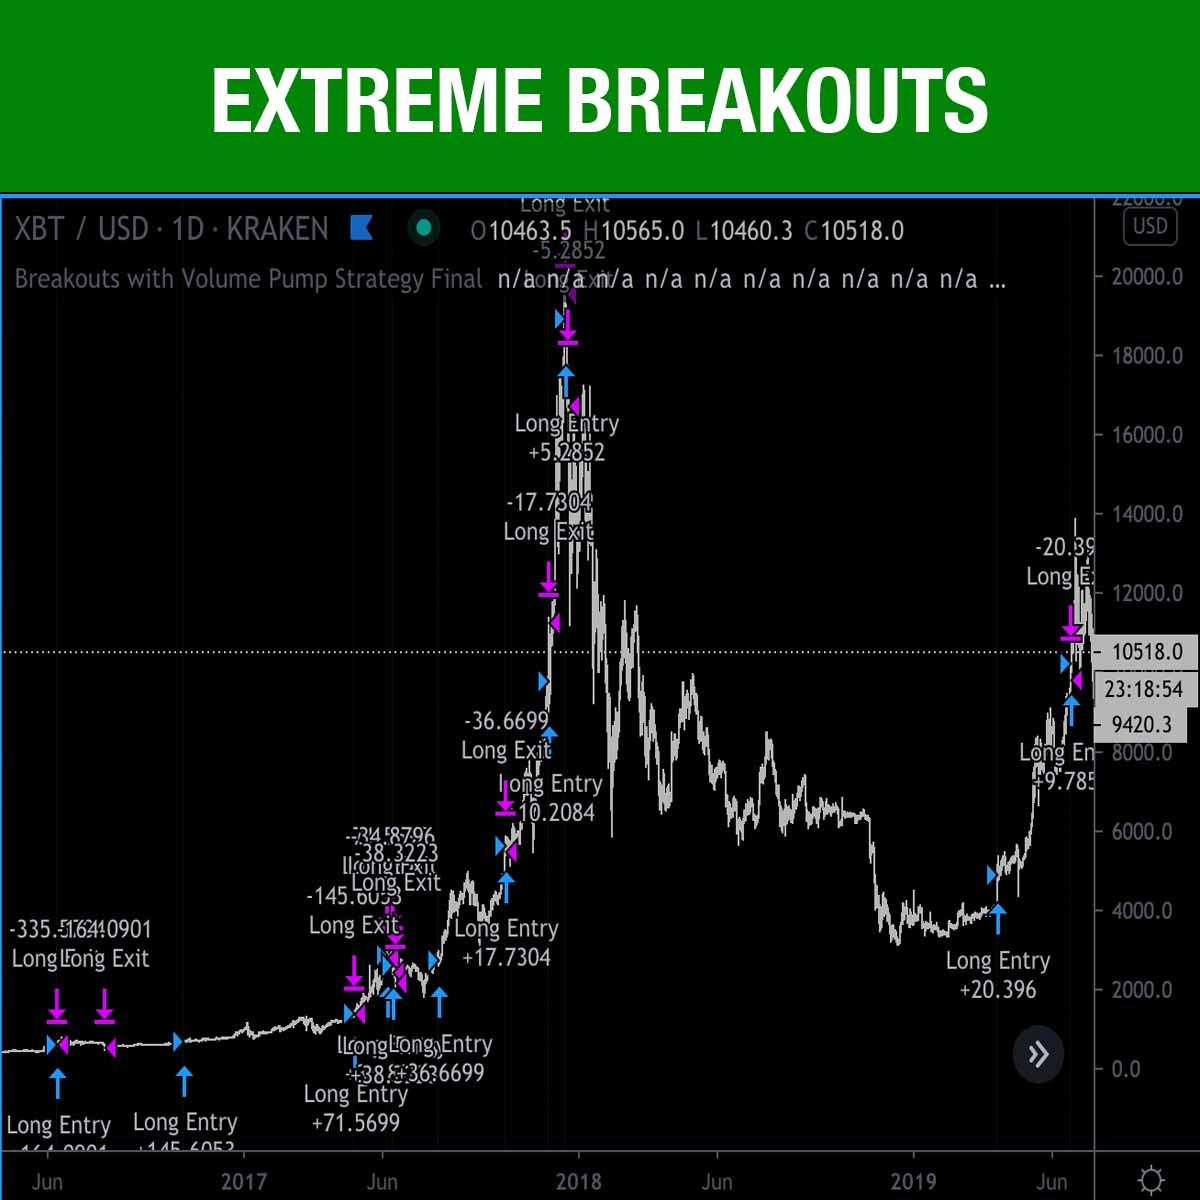 Extreme Breakouts Strategy For Tradingview